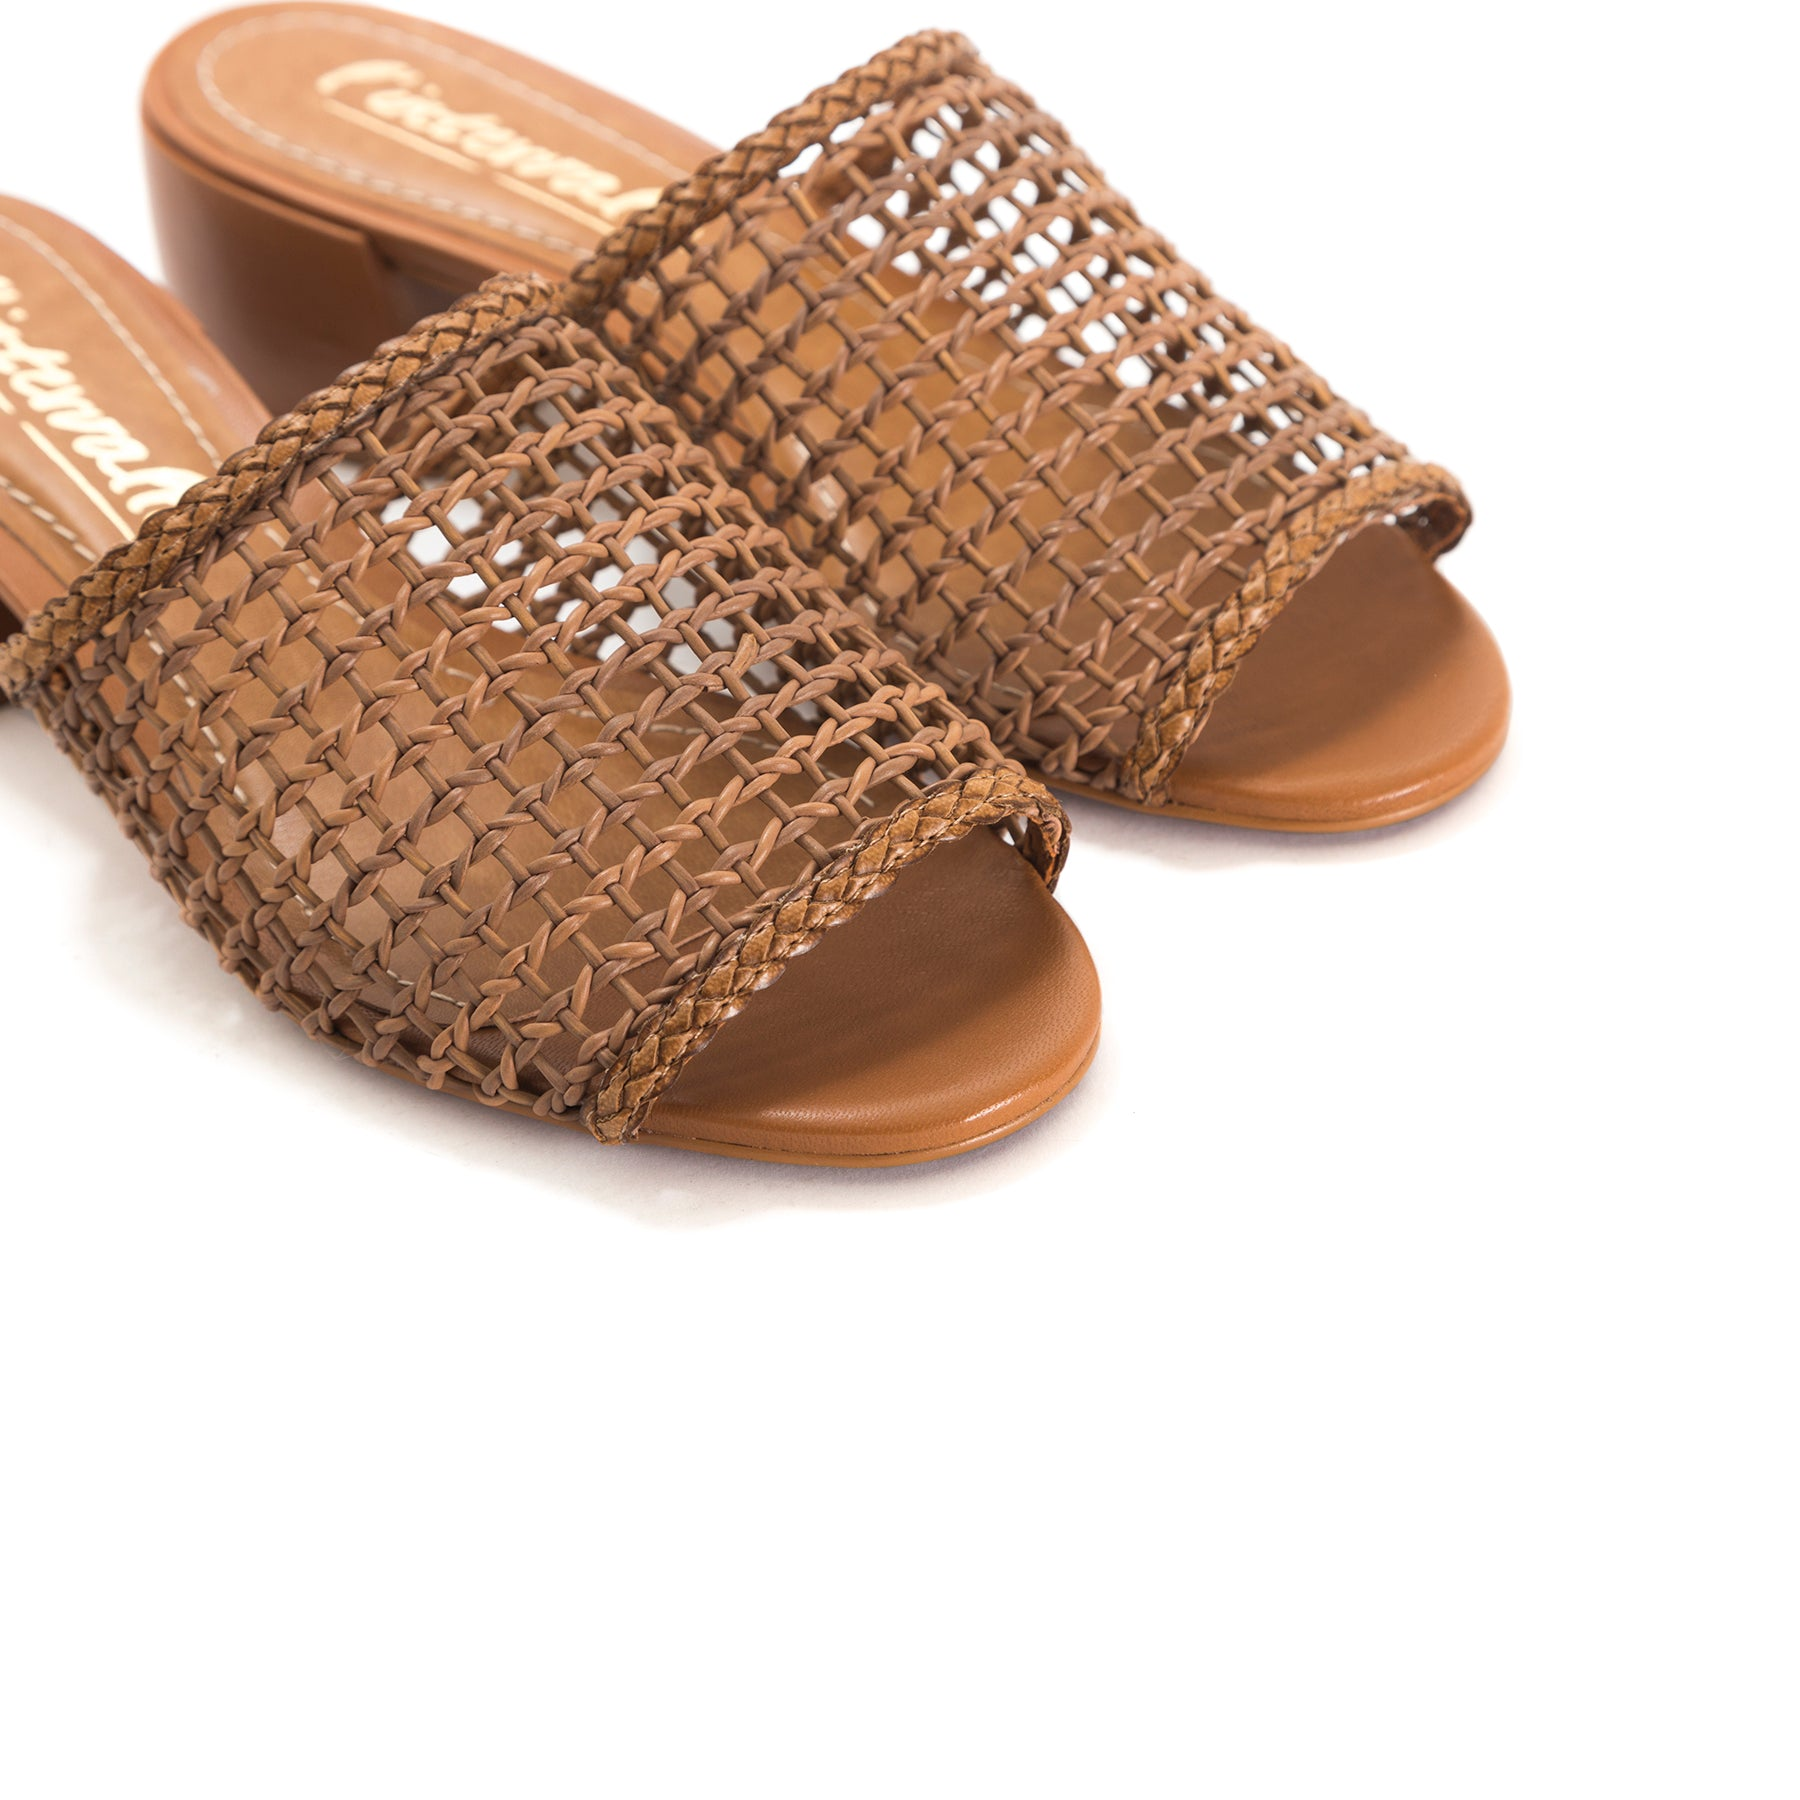 Dia Chesnut Leather Sandals